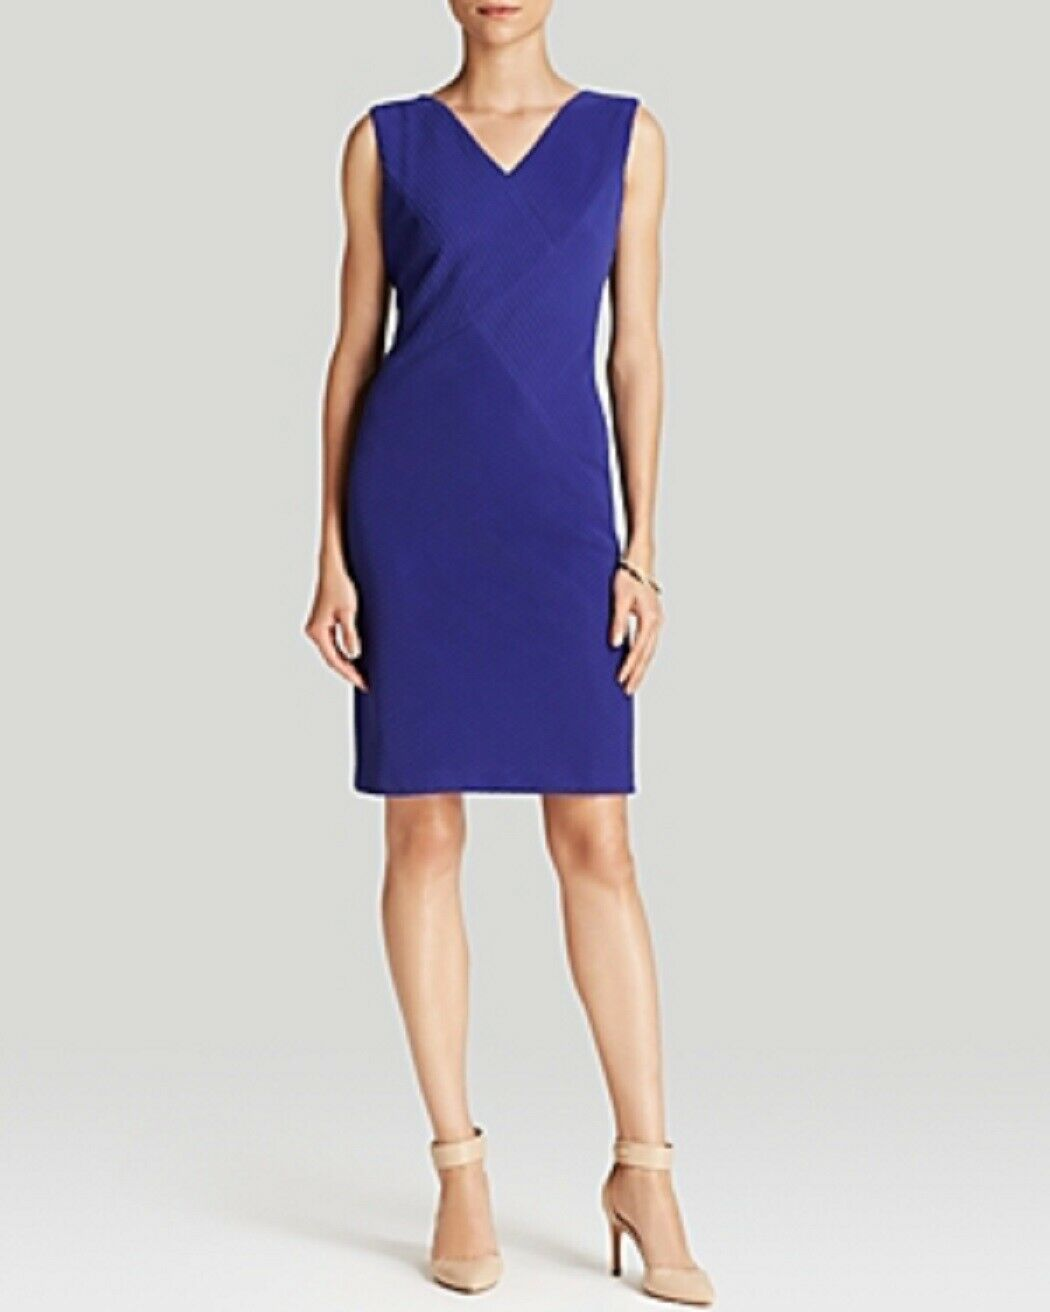 Anne Klein Dress Sz 4 Ultra Violet Purple Sleeveless Business Cocktail Party